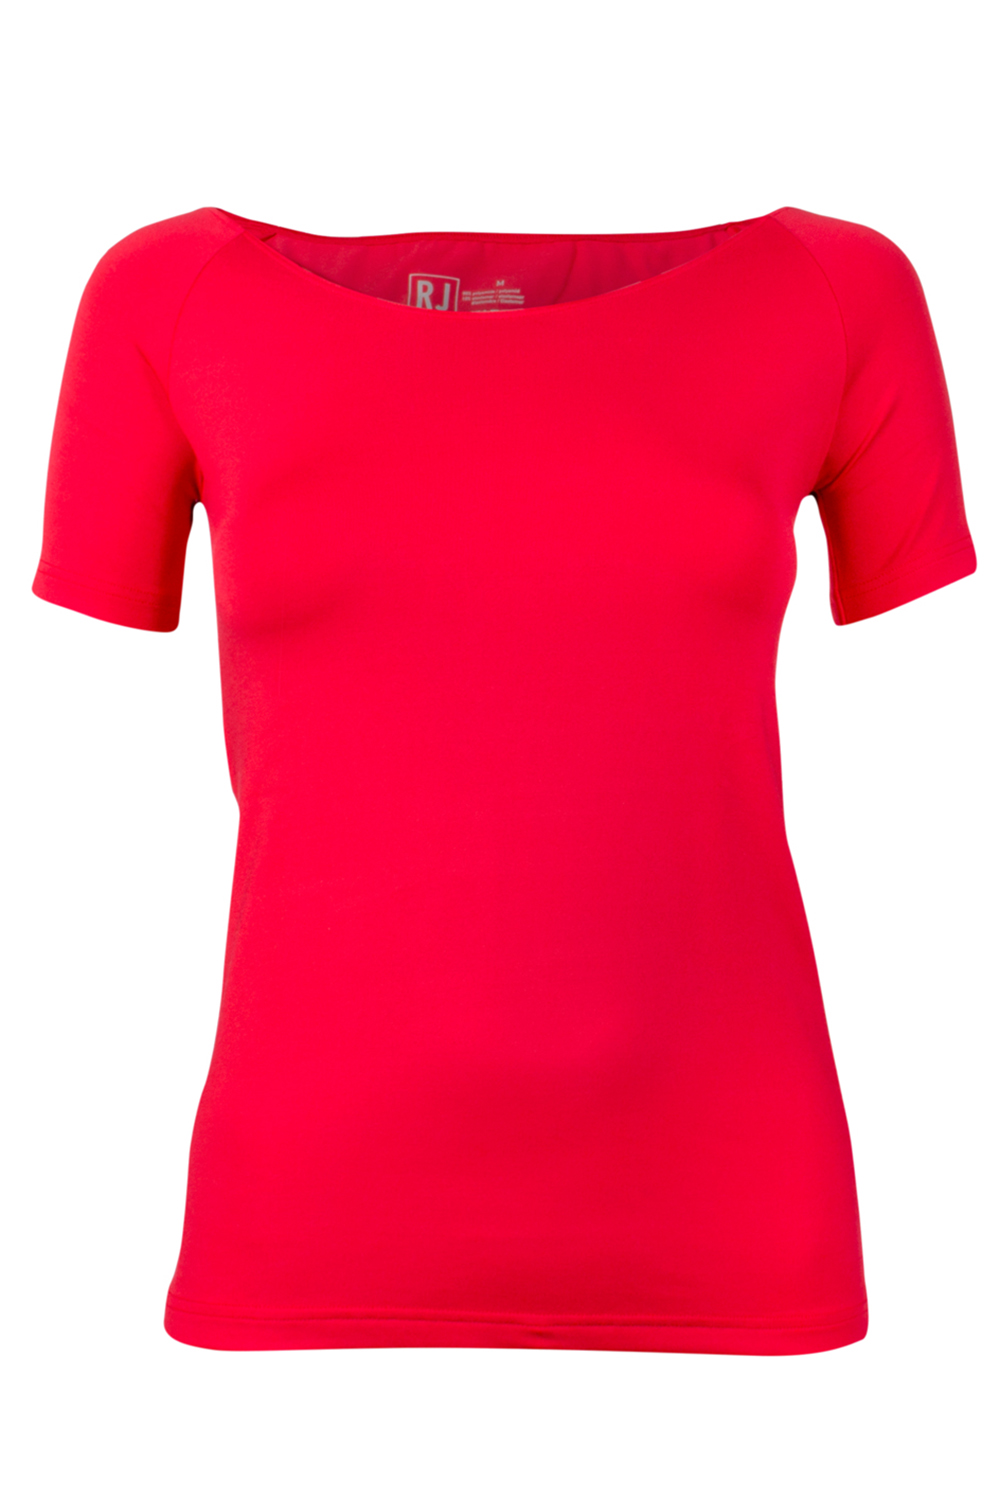 RJ Pure Color Dames T-shirt